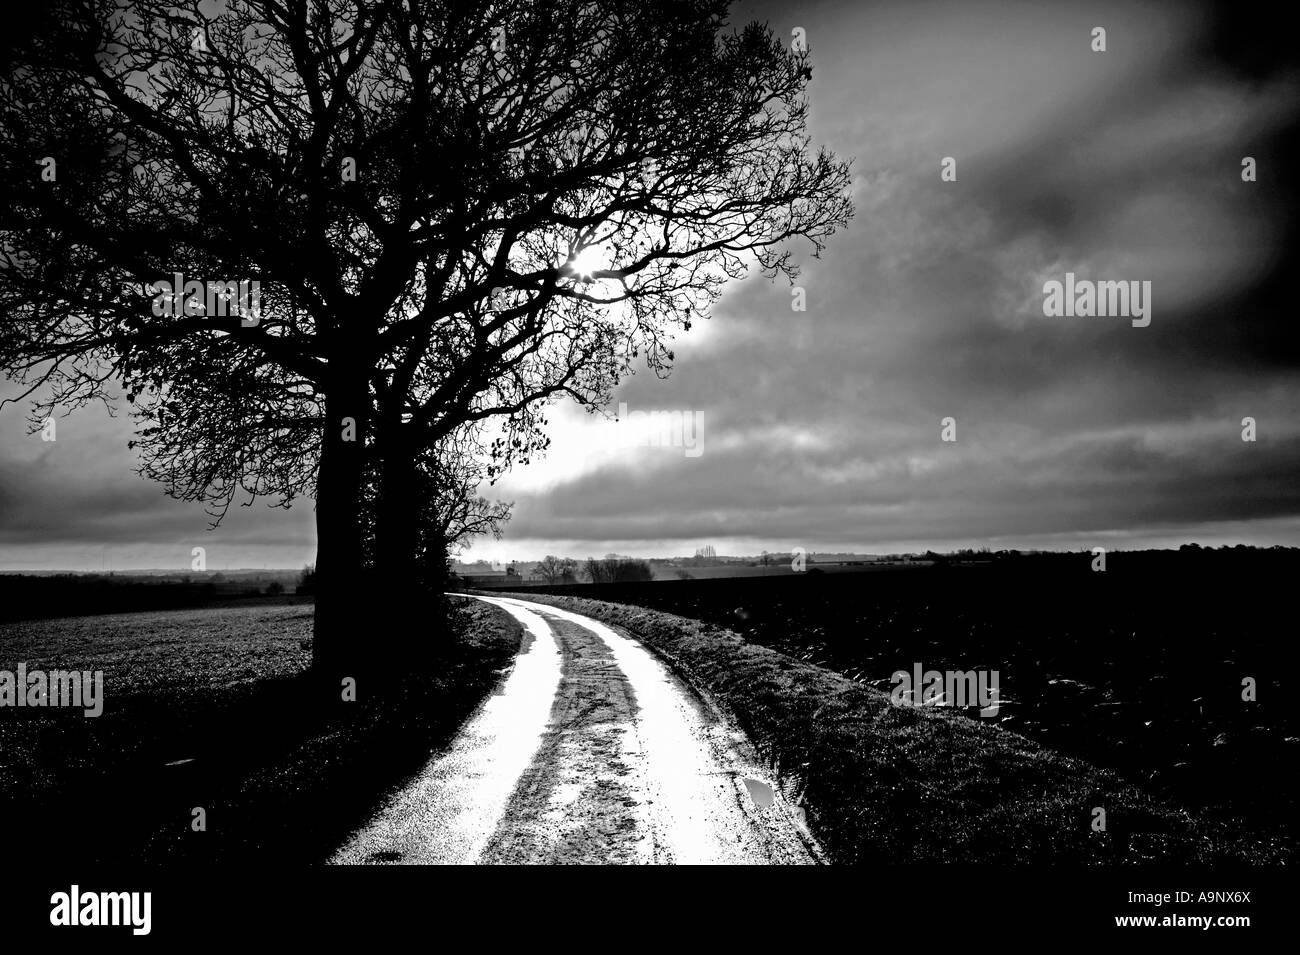 black and white image of oak tree at side of country lane against a dramatic winter cloudy sky - Stock Image